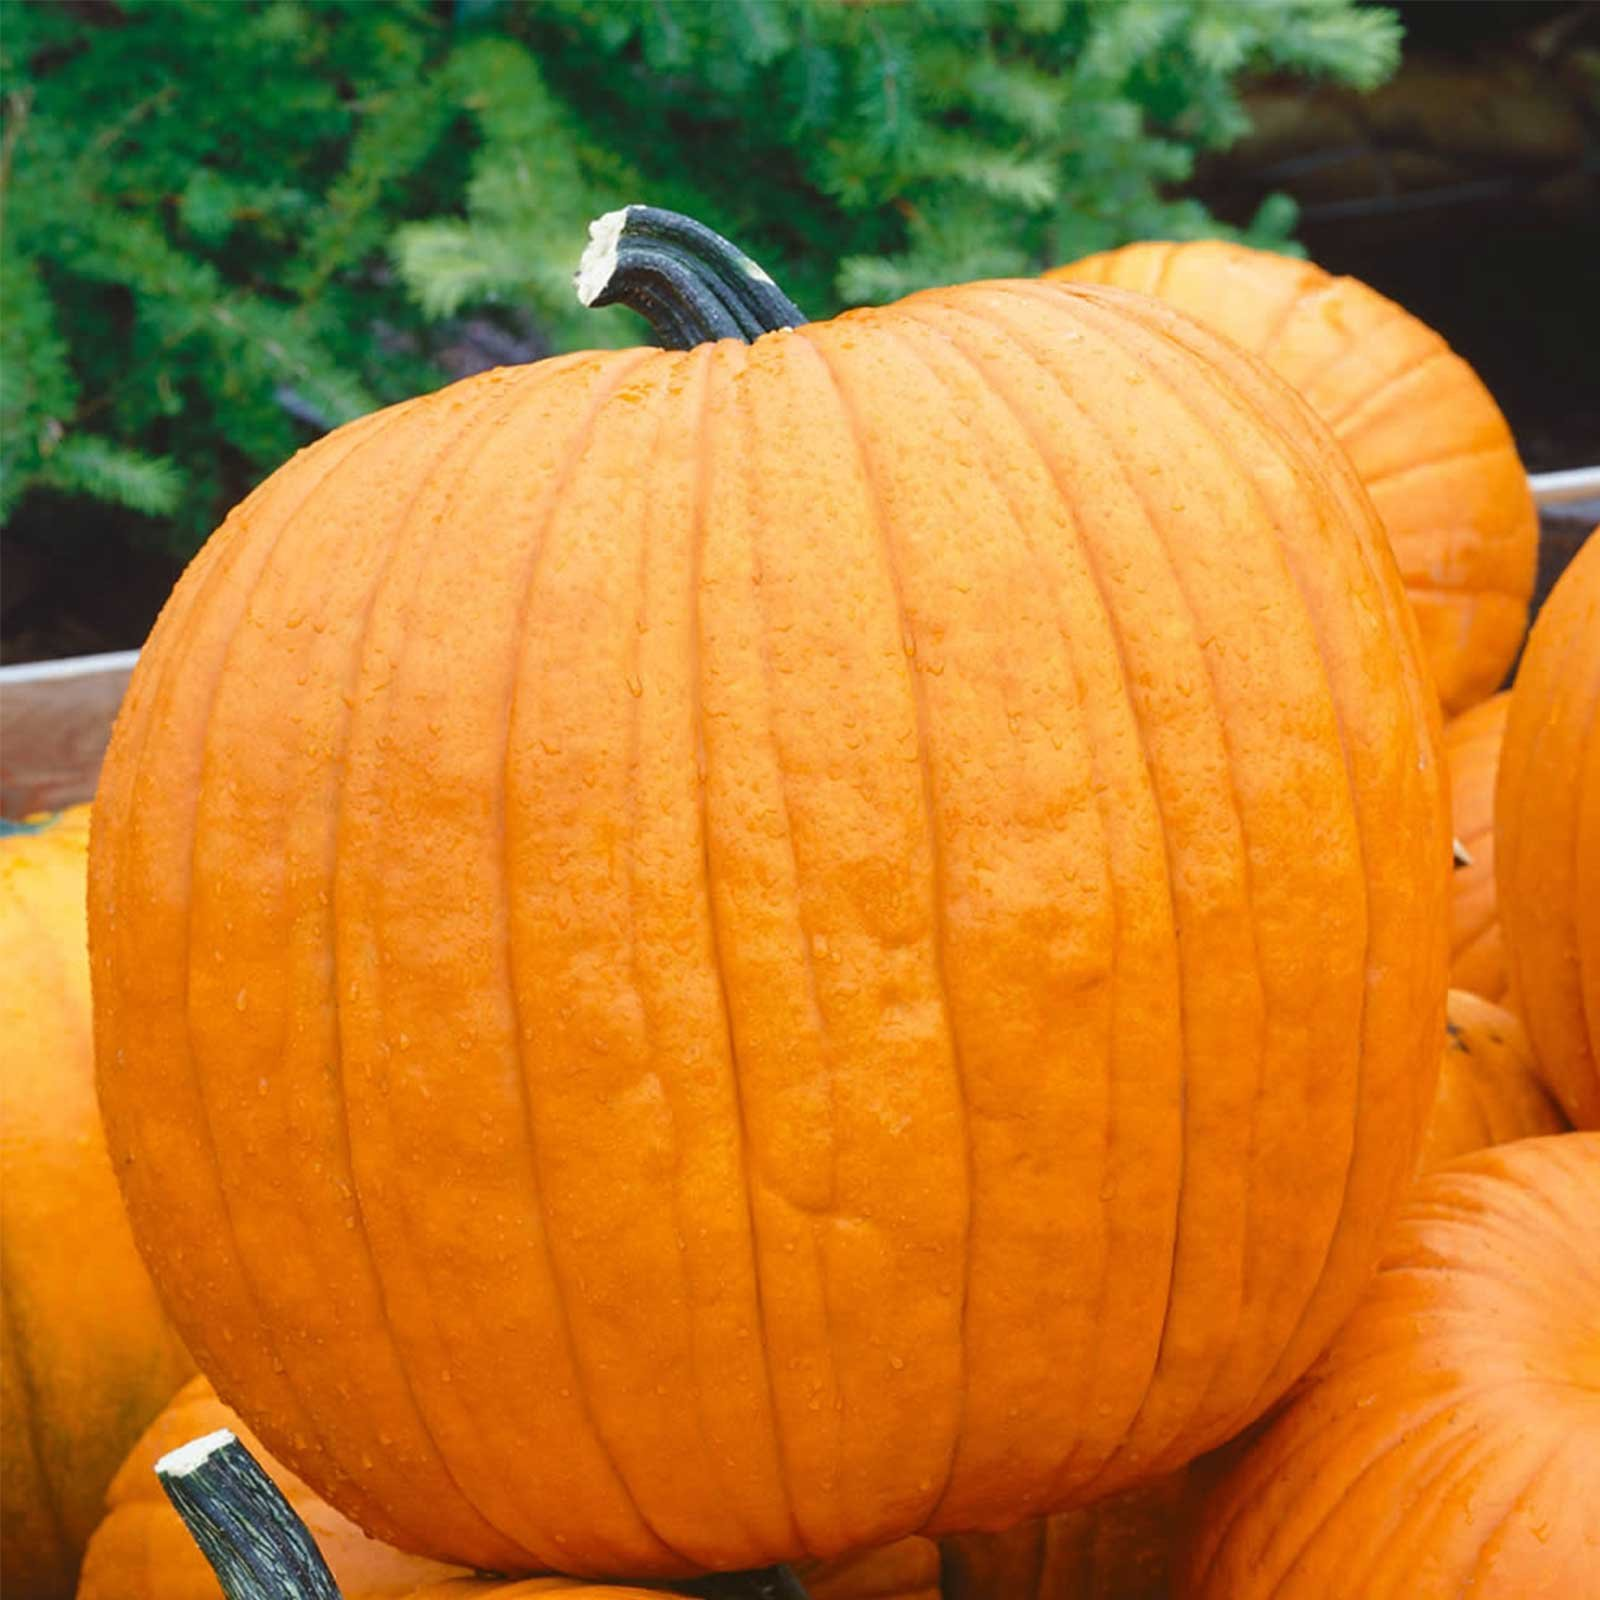 Pumpkin Garden Seeds - Howden Variety - 1 Lb (Treated) Seeds - Non-GMO, Heirloom Pumpkins - Rich Orange - Jack O'Lantern Pumpkin Gardening by Mountain Valley Seed Company (Image #1)